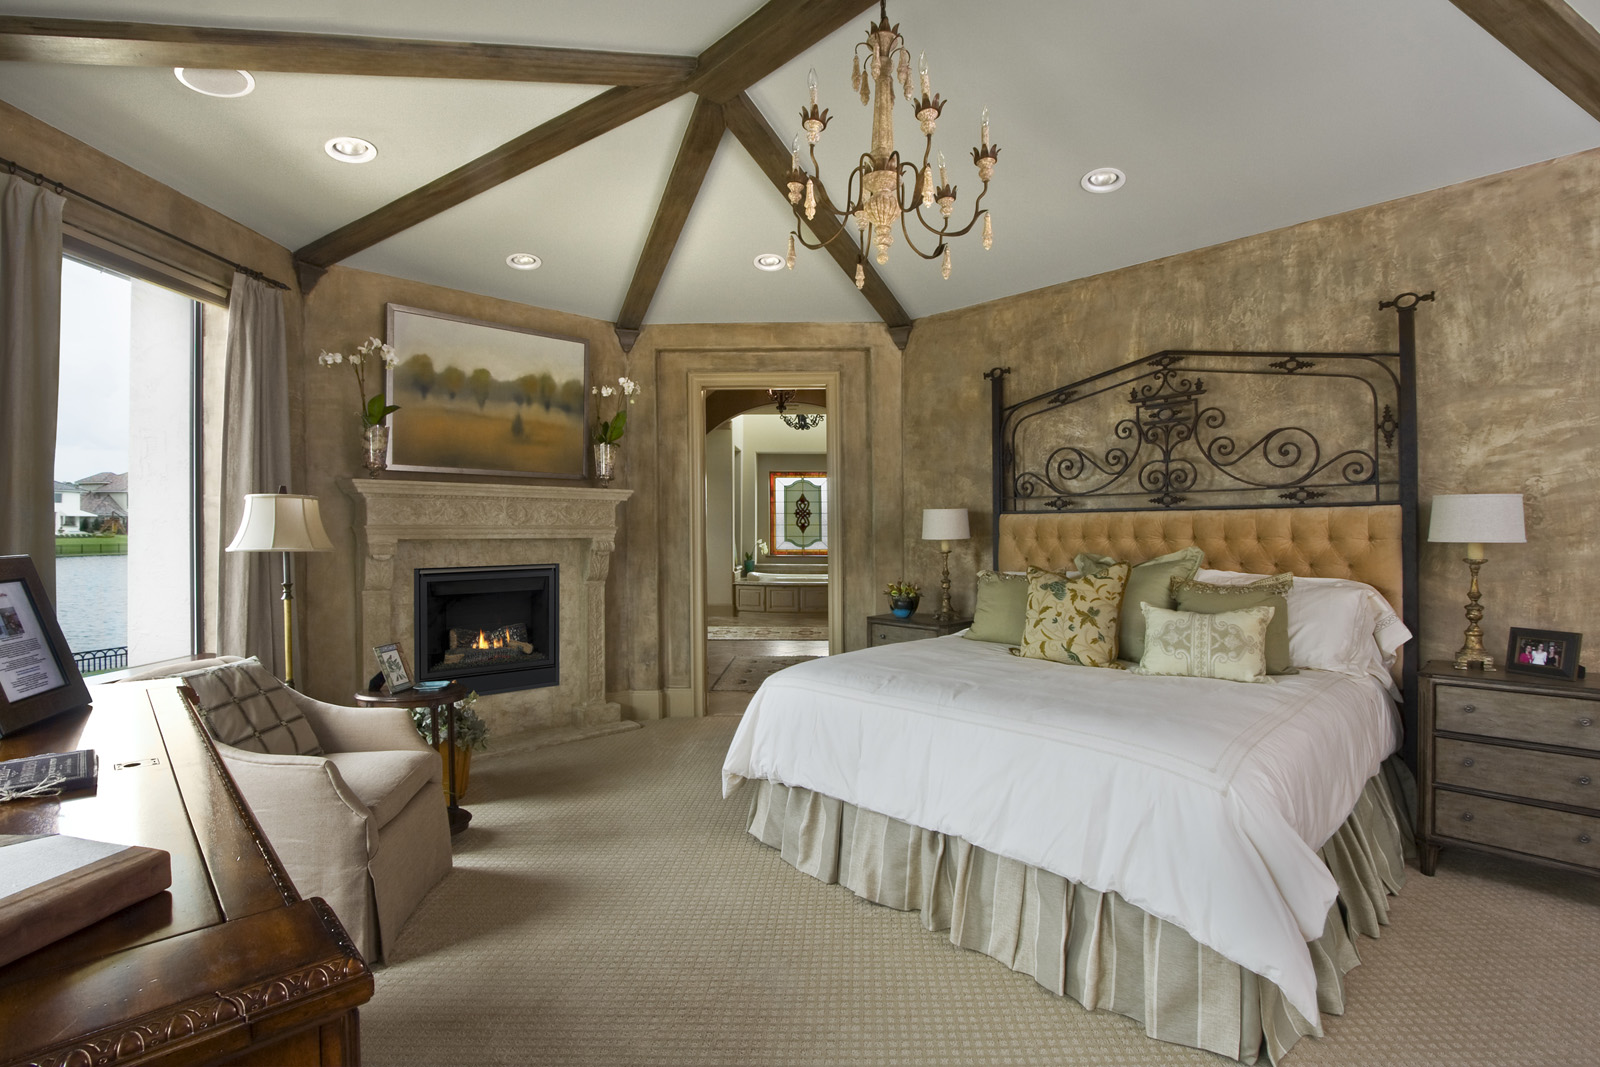 Classic Style Furniture fro Practical Chic Interiors. Bedroom with the grandeur wall trimming and decor